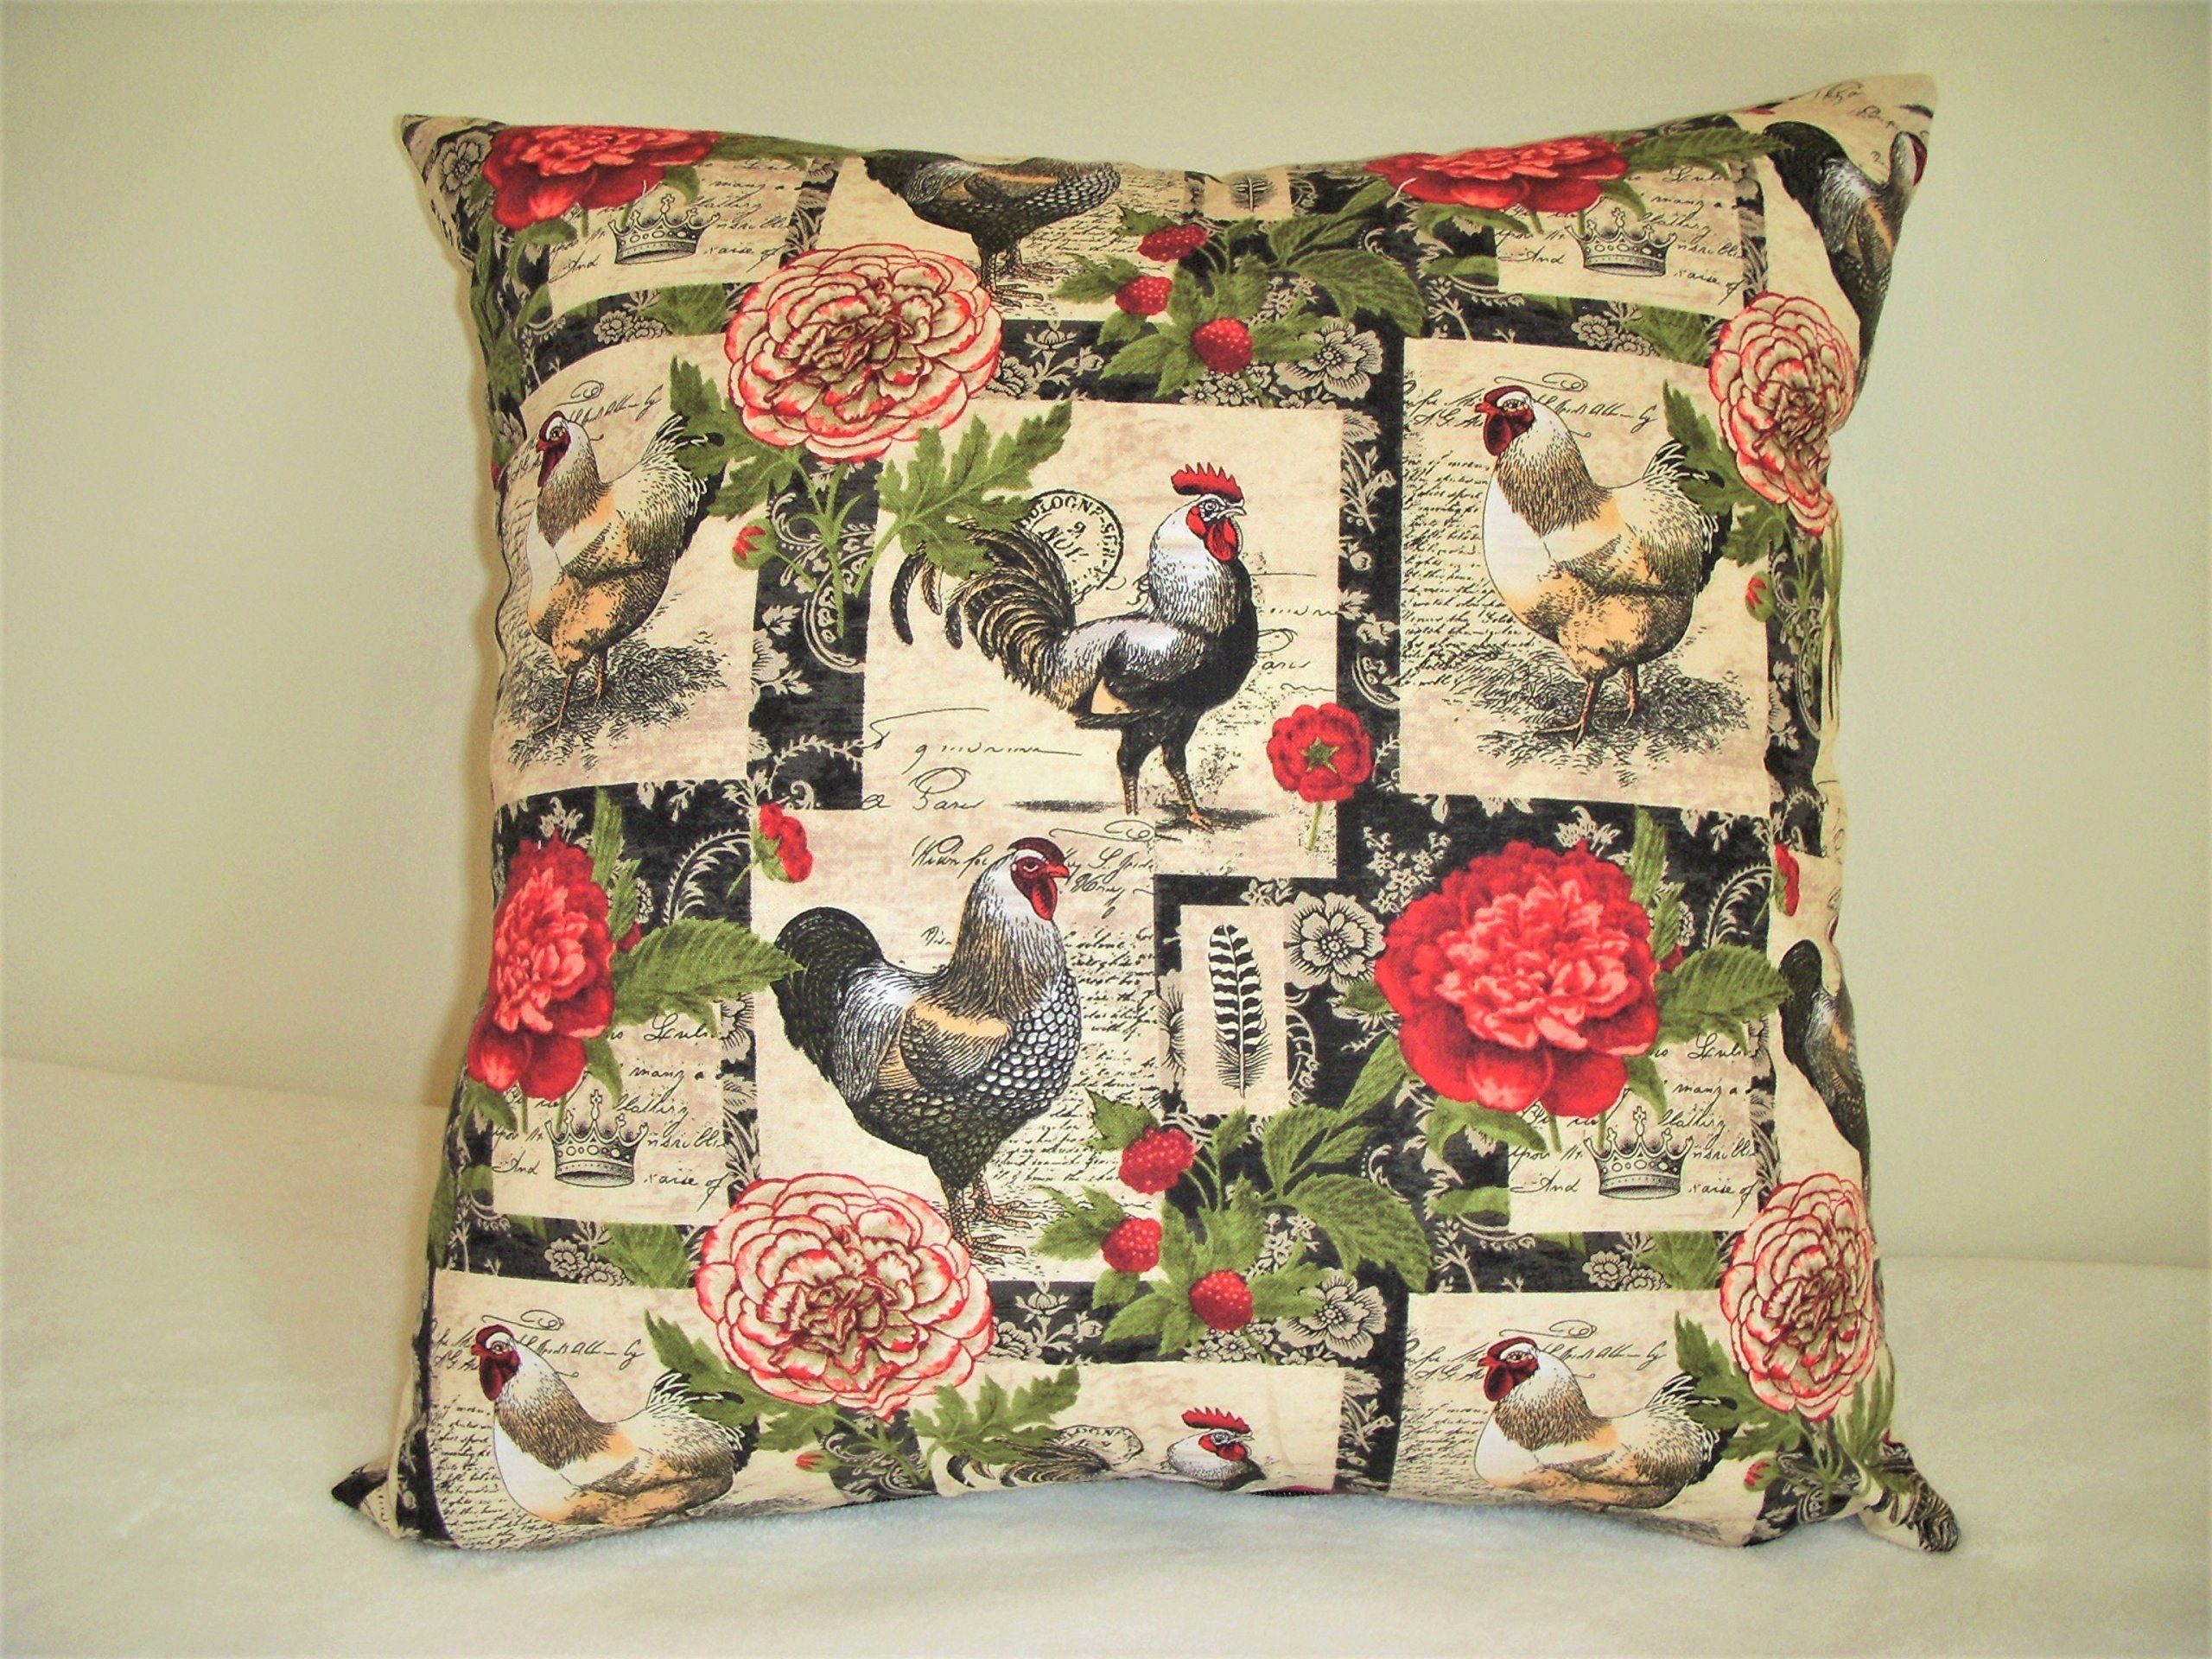 Rooster pillow cover french red roses black stamps script handmade